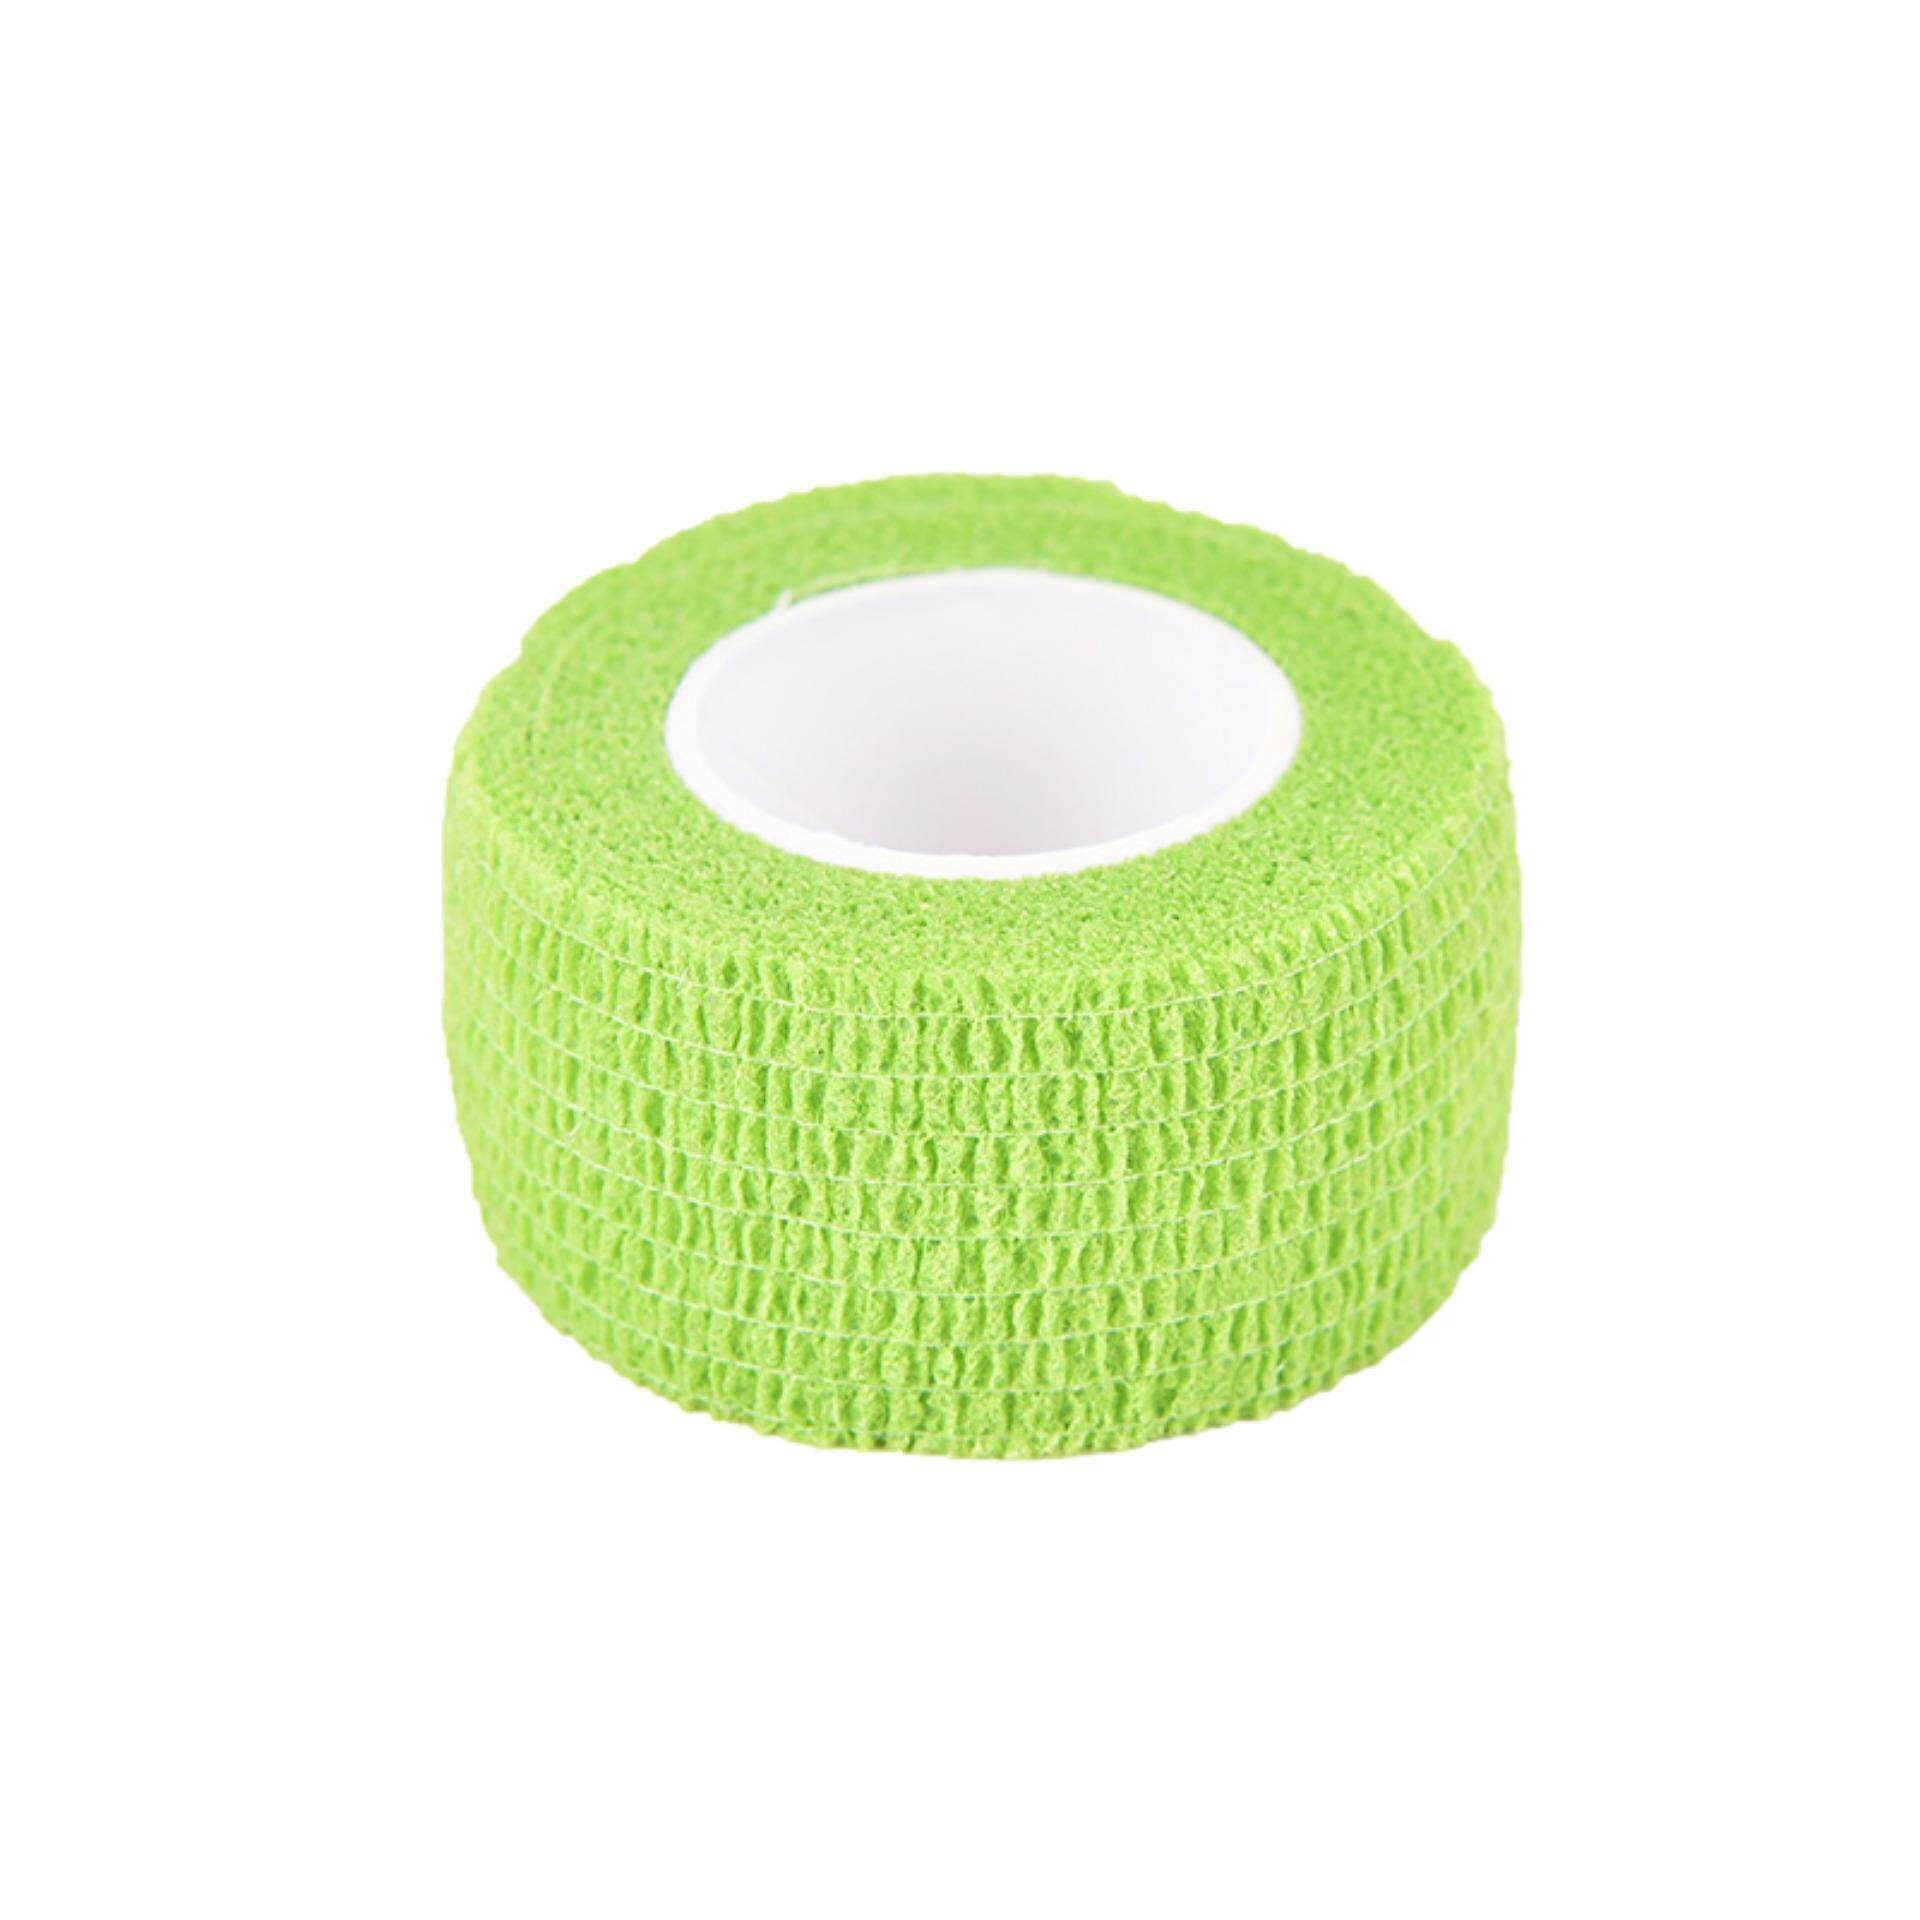 Disposable Self-Adhesive Elastic Bandage For Handle Grip Tube Tattoo Accessories Grass Green - intl